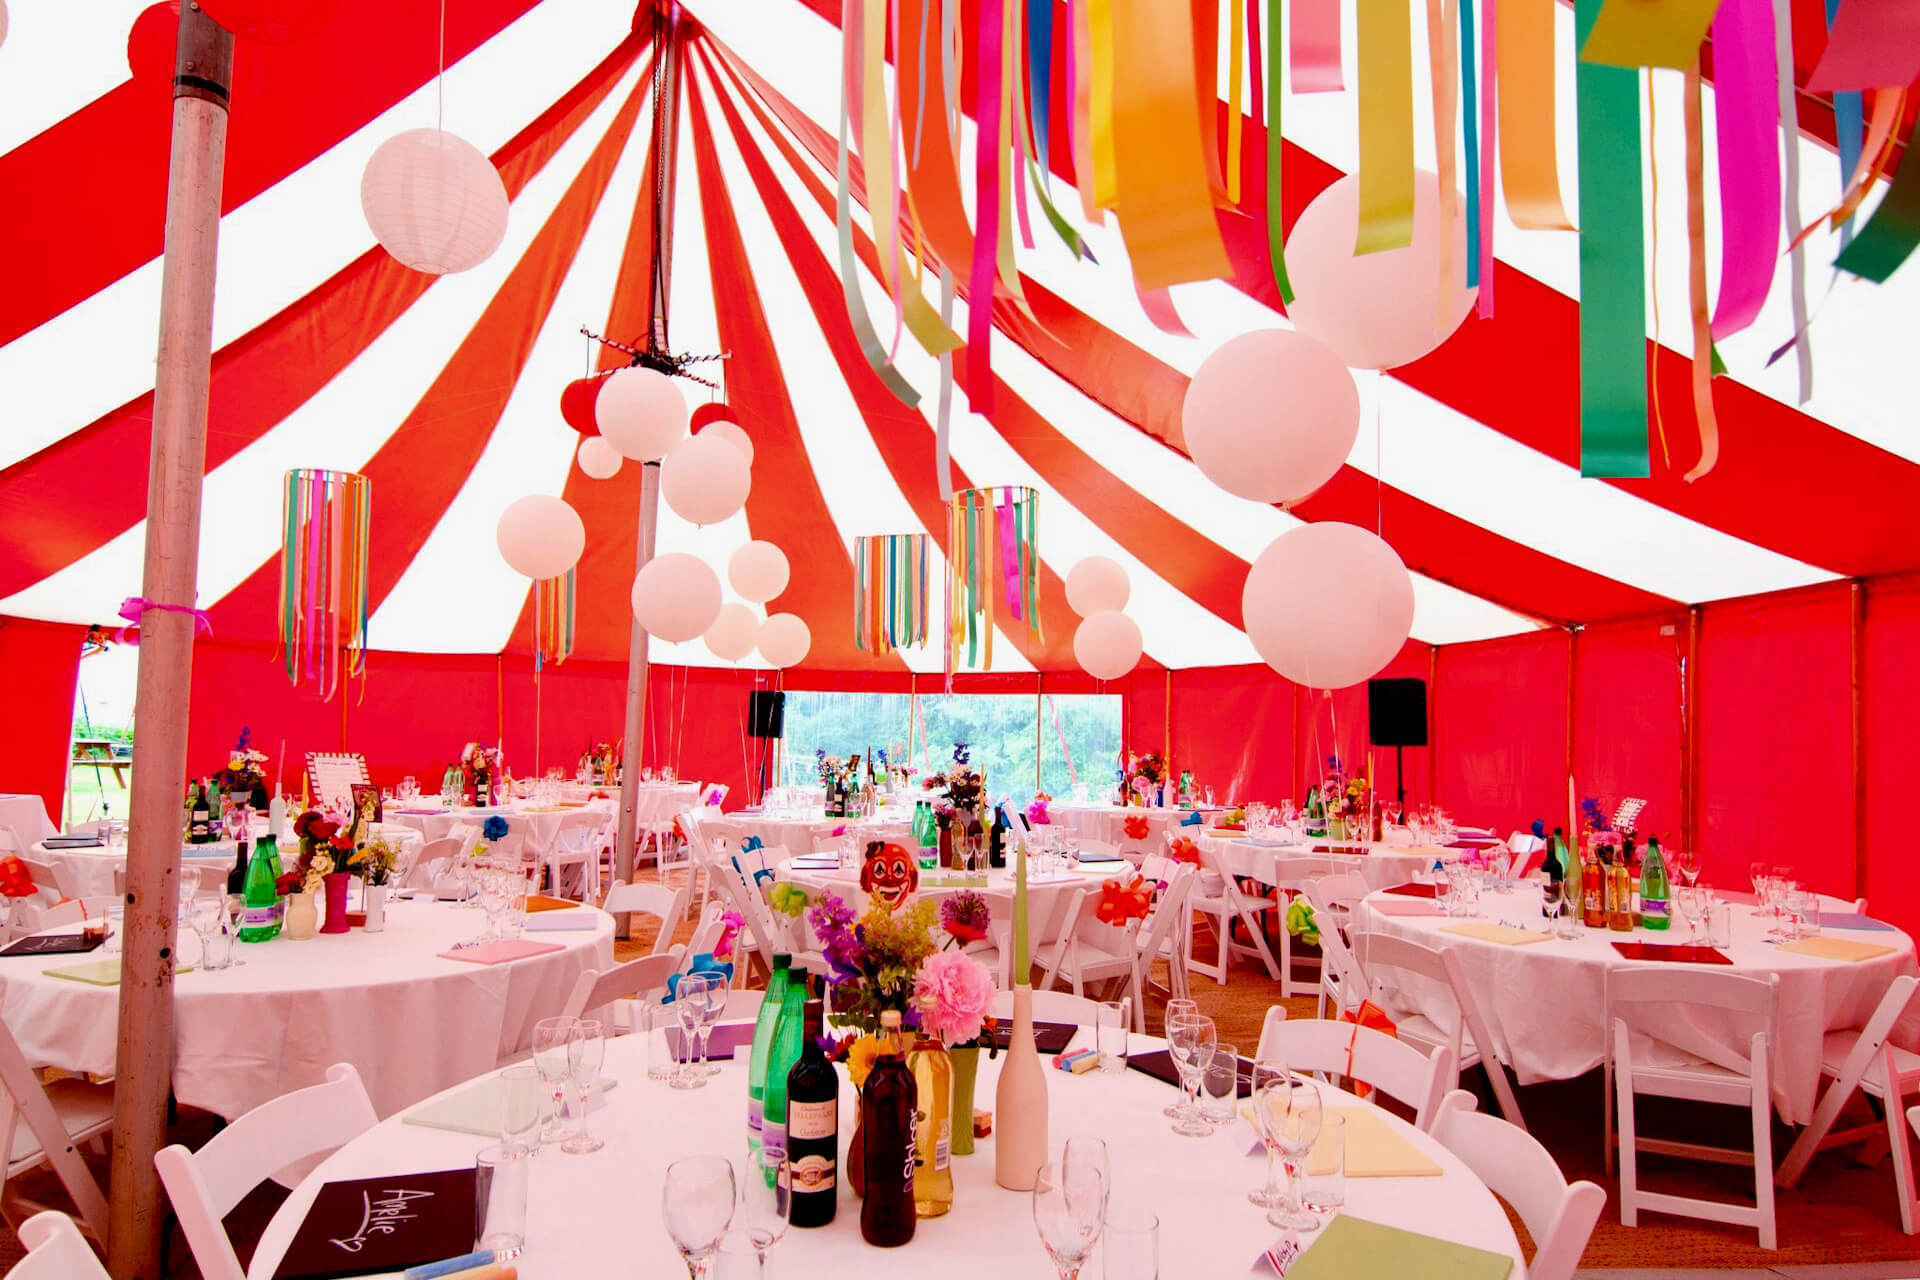 Circus theme dinner in Cornwall